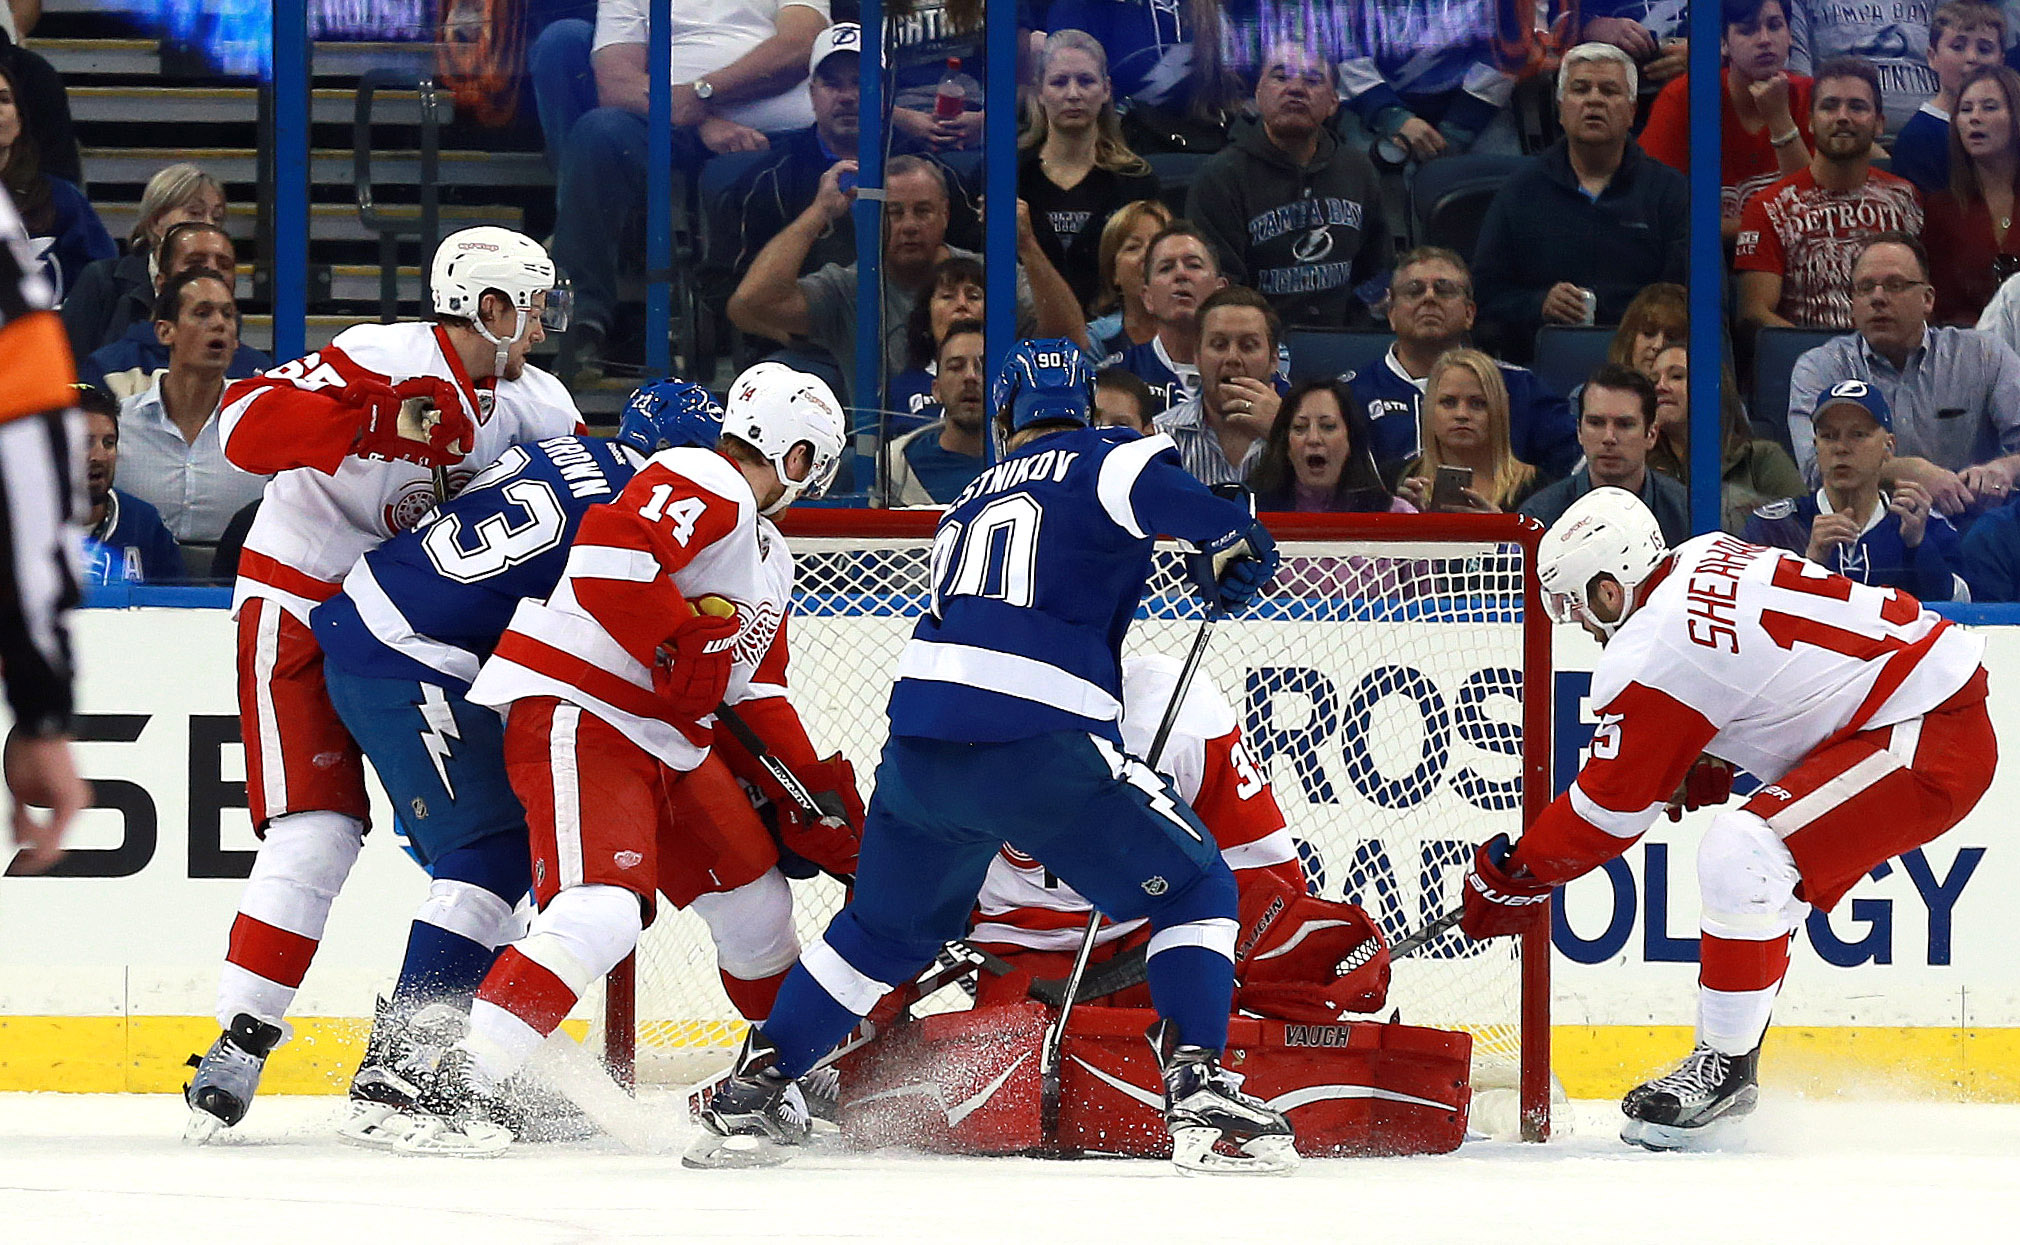 Vladislav Namestnikov (90) scores a goal on Detroit Red Wings goalie Jimmy Howard (35) during the first period at Amalie Arena.(photo Kim Klement / USA TODAY Sports)